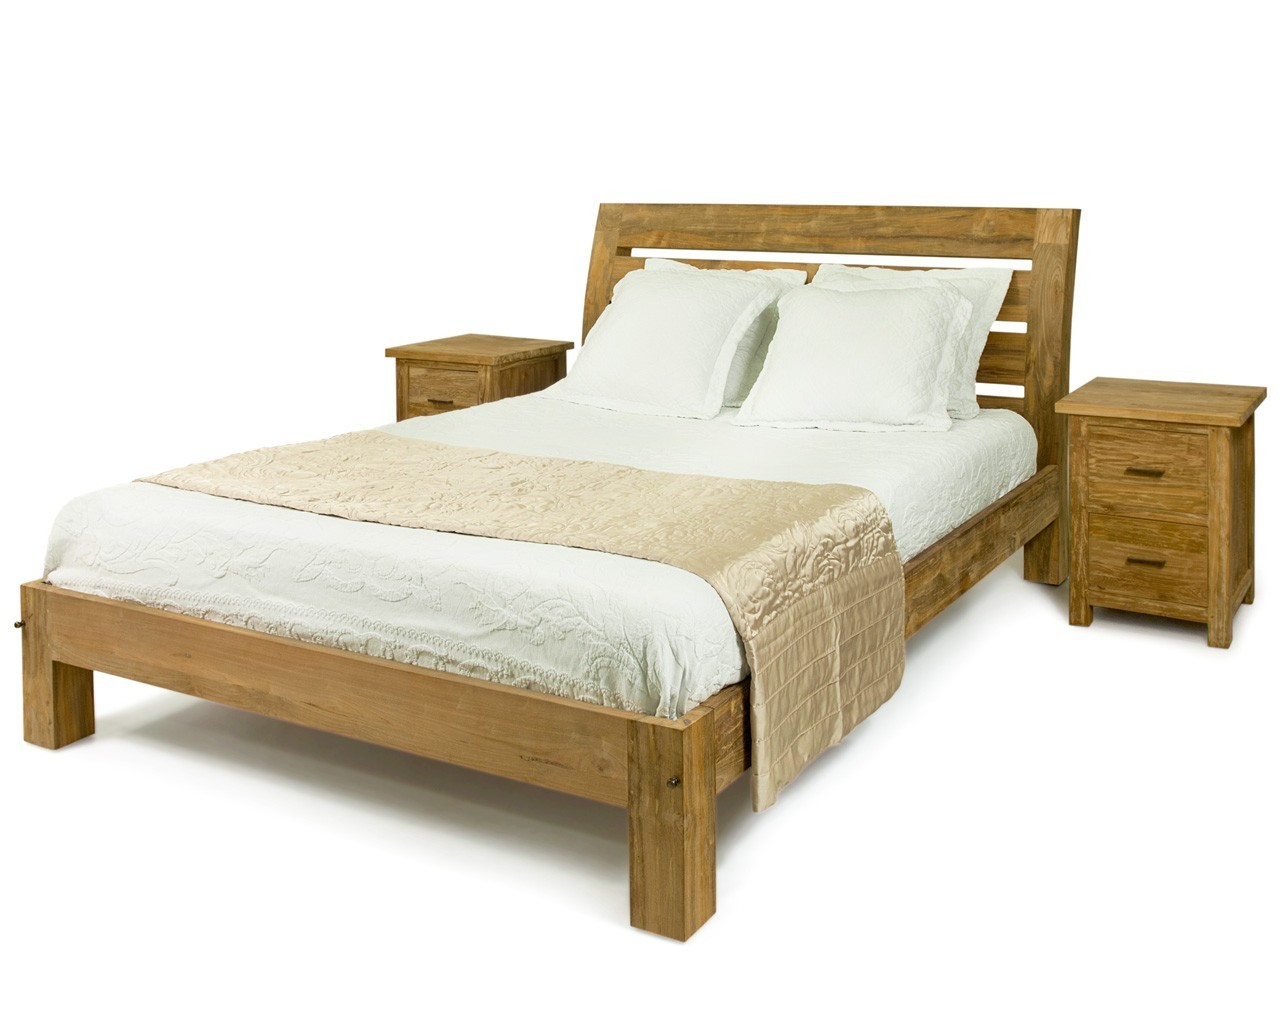 Buy double bed online in india 78504524 - Design of bed ...